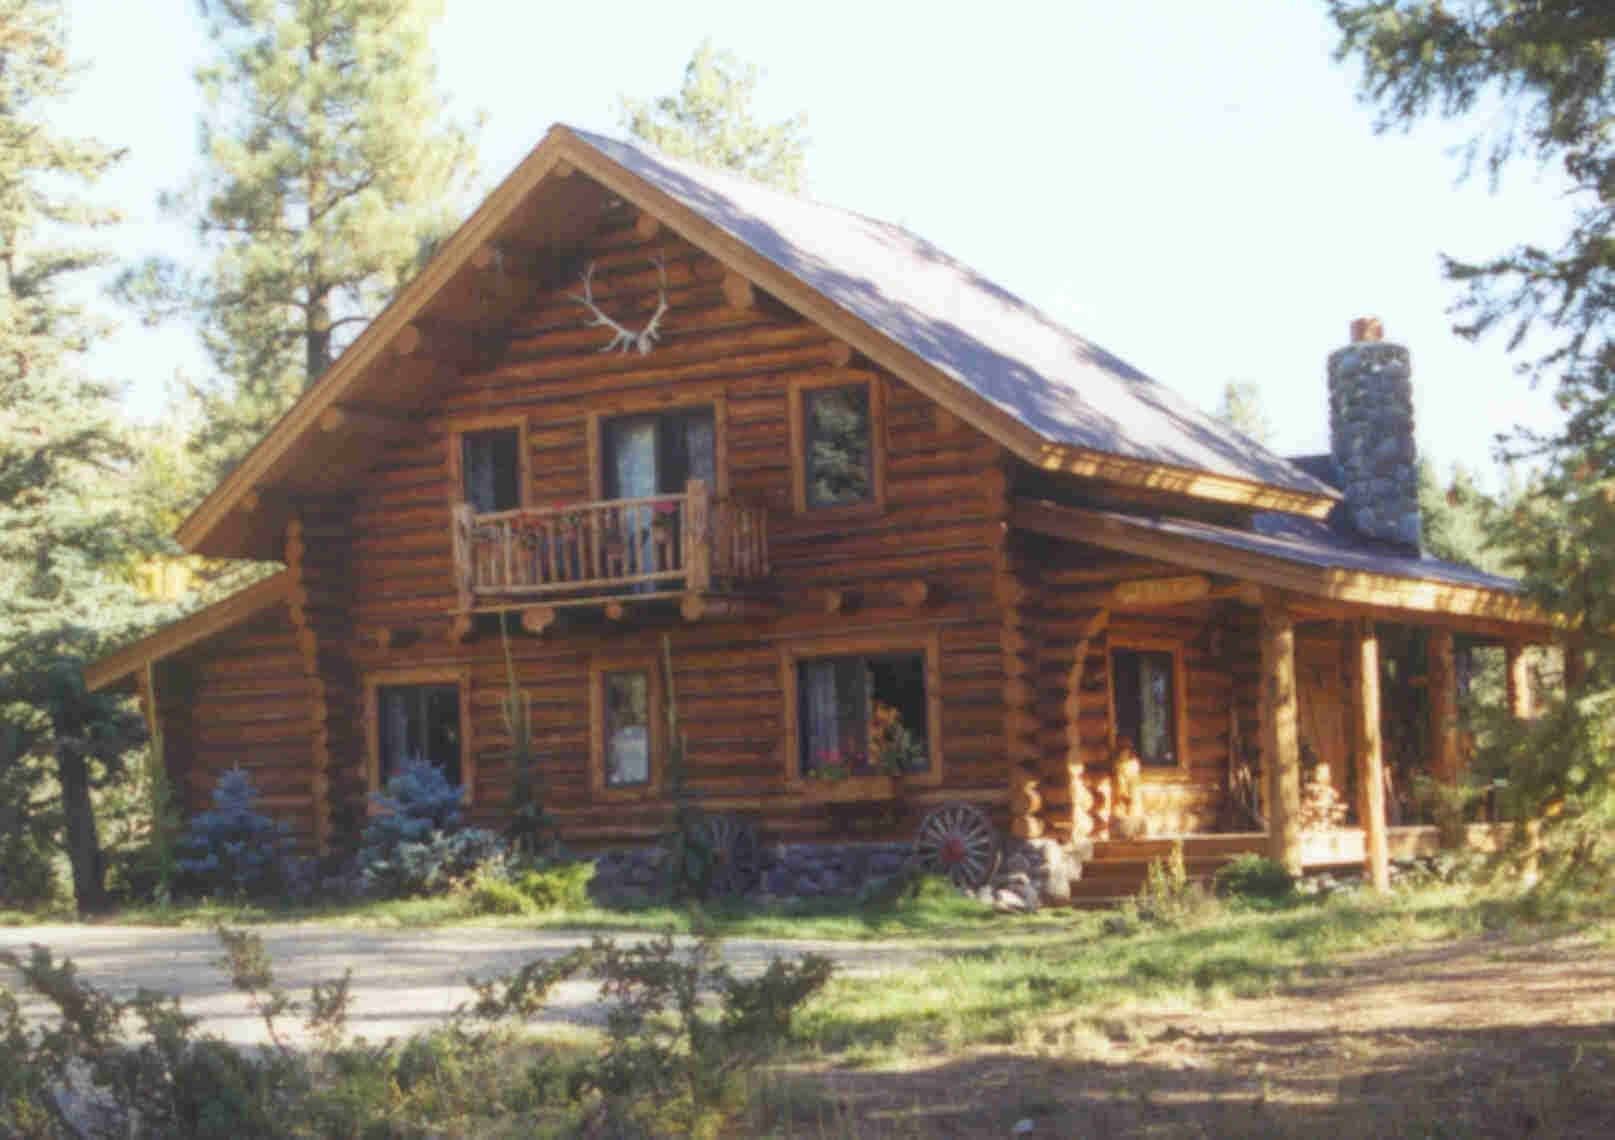 This log cabin is nice